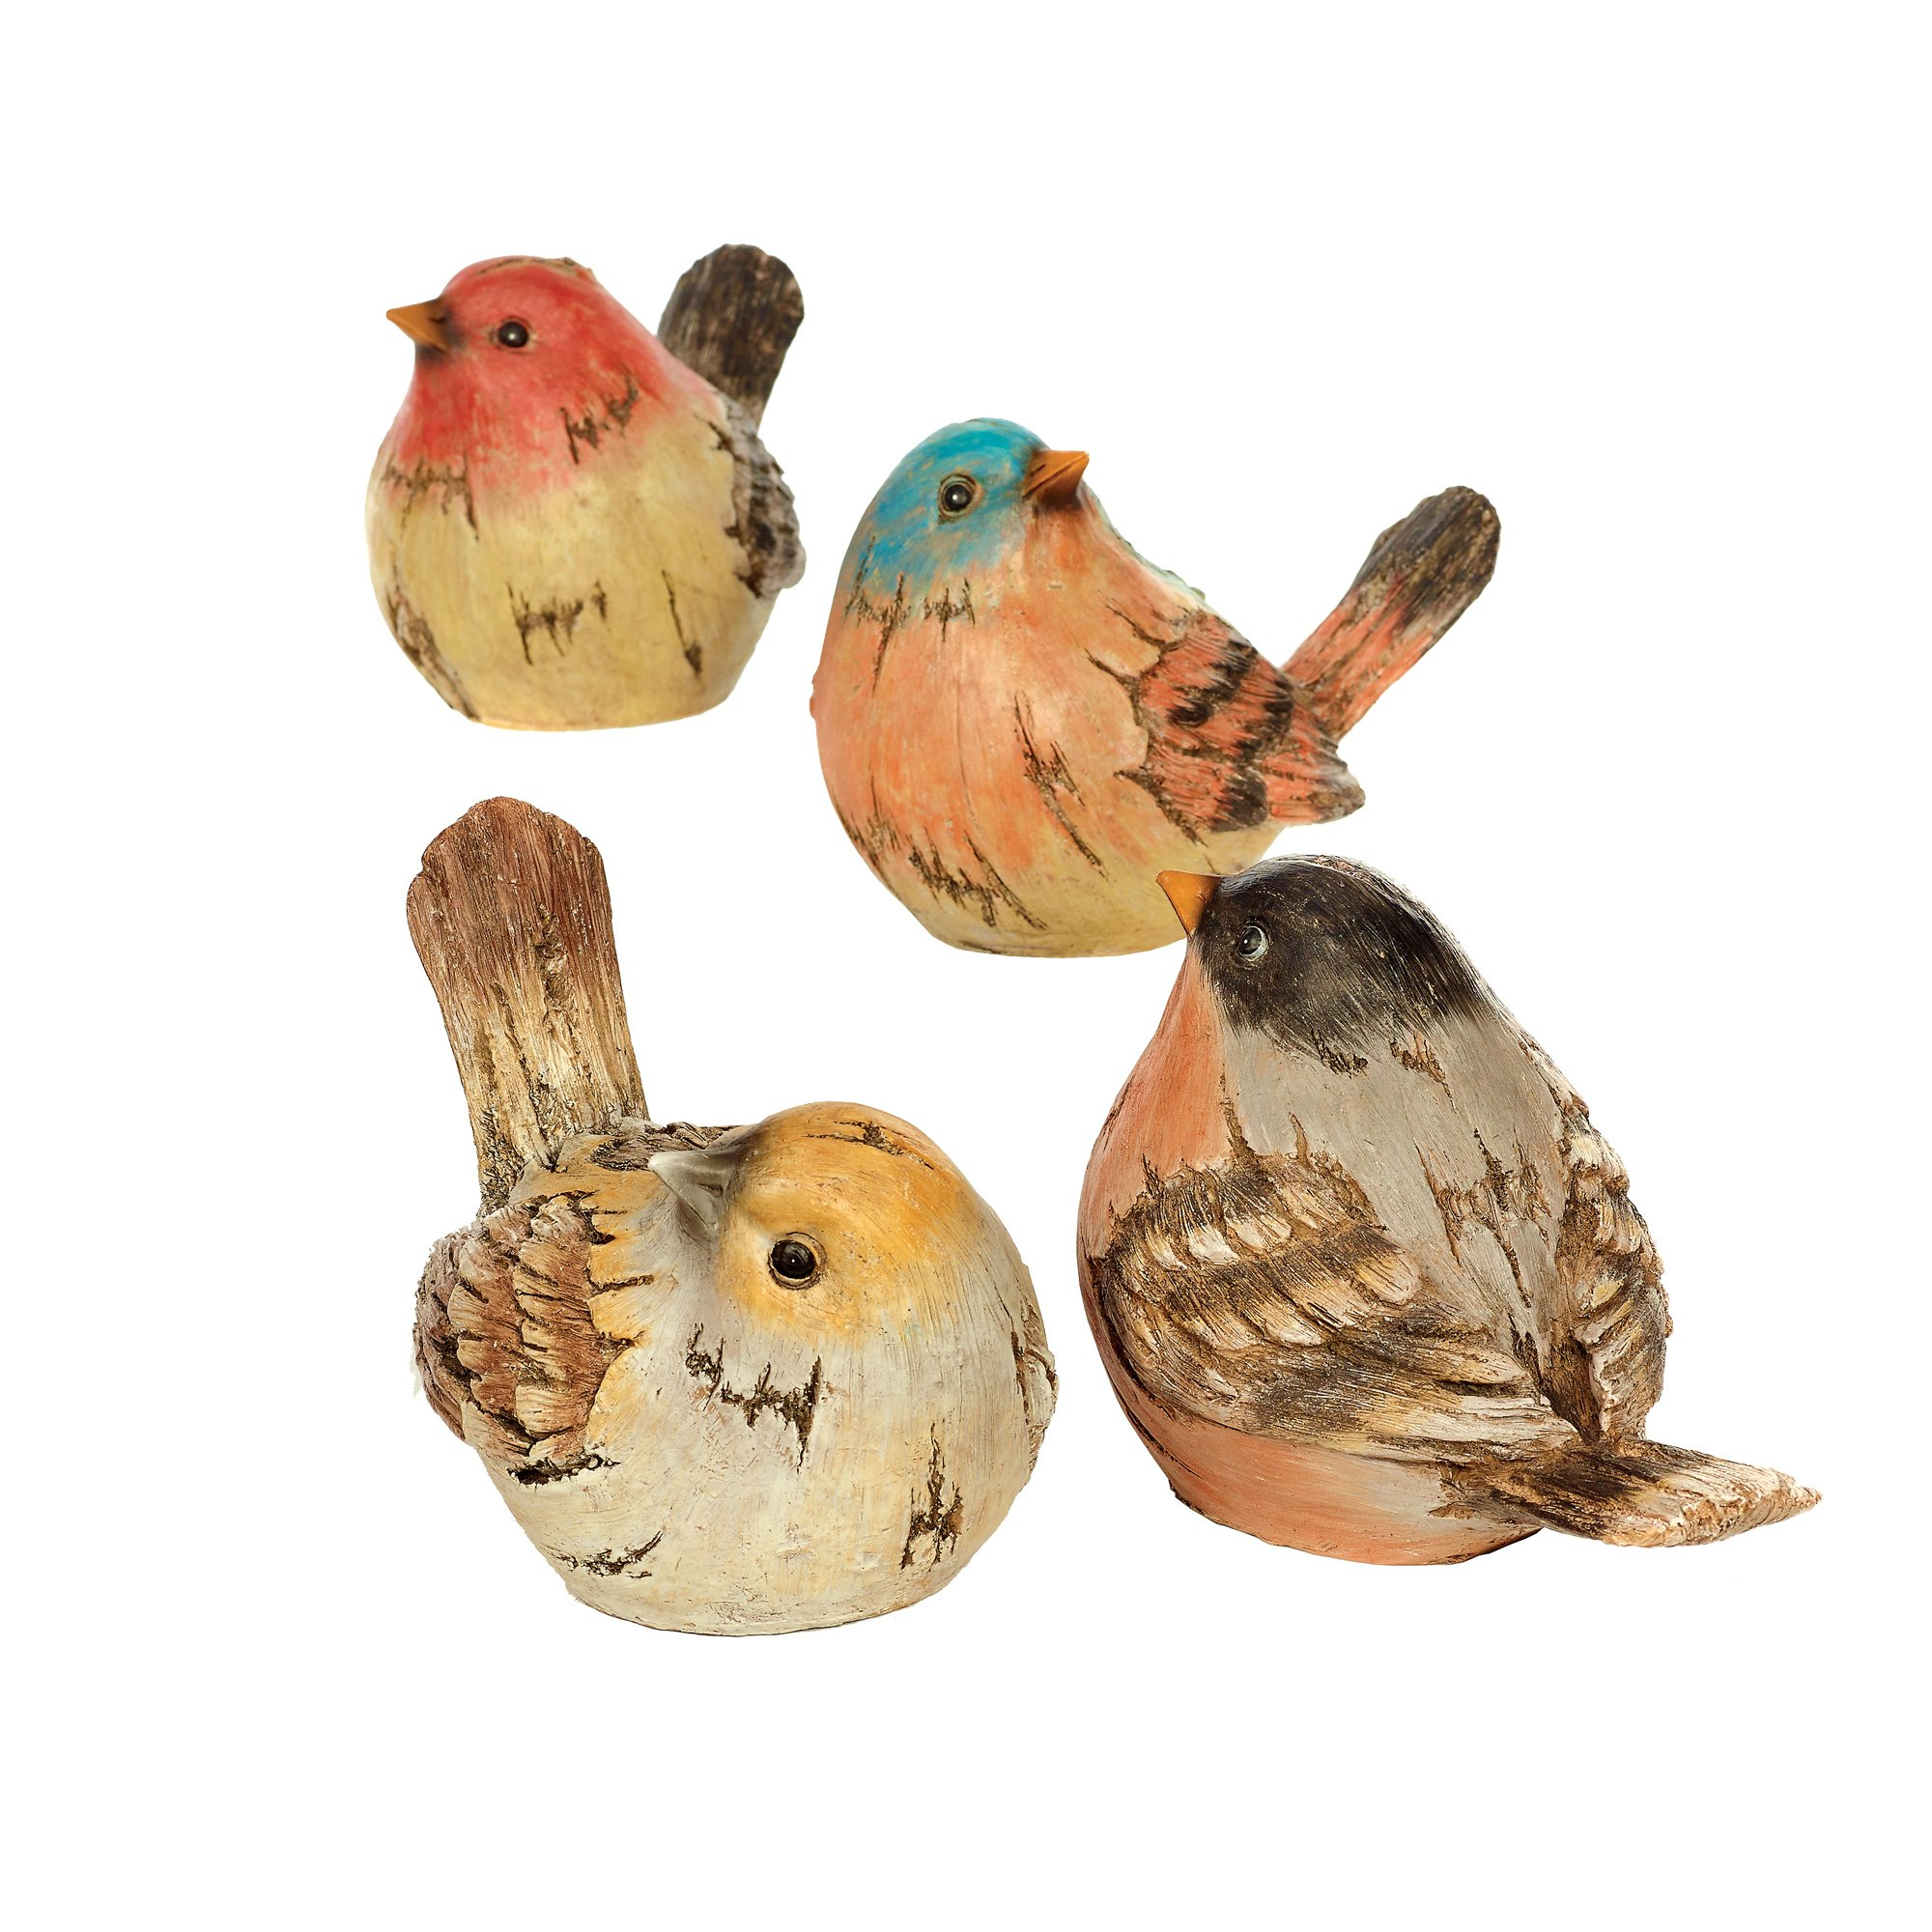 Napco Watchful Birds Golden Chestnut 9.75 x 6.5 Resin Stone Garden Figurines, Set of 4